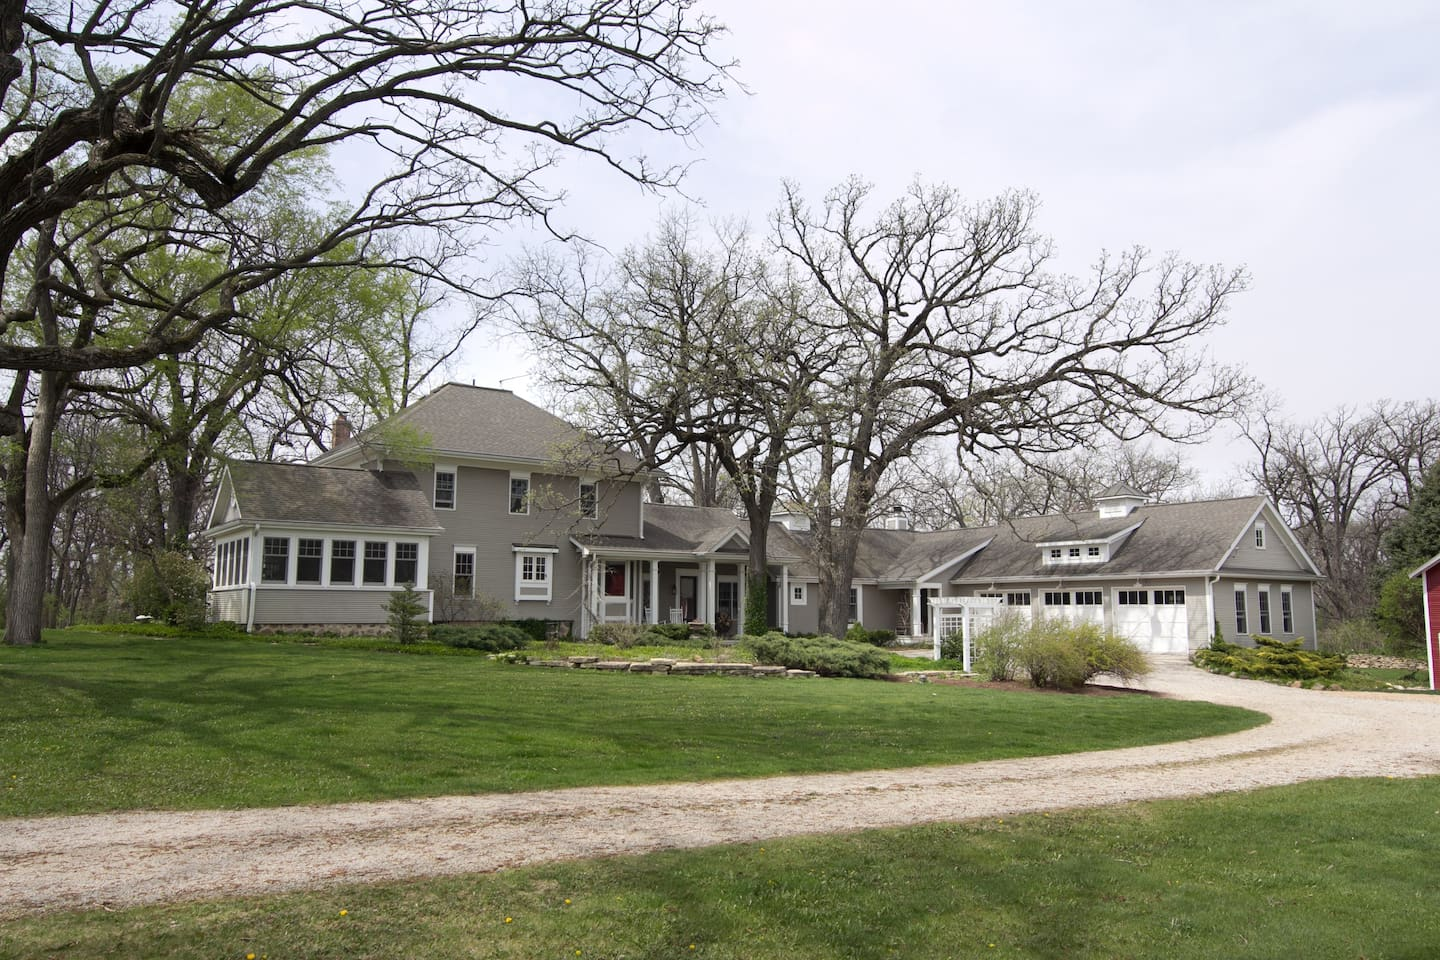 1890s Farmhouse with Attached In-Law Quarters